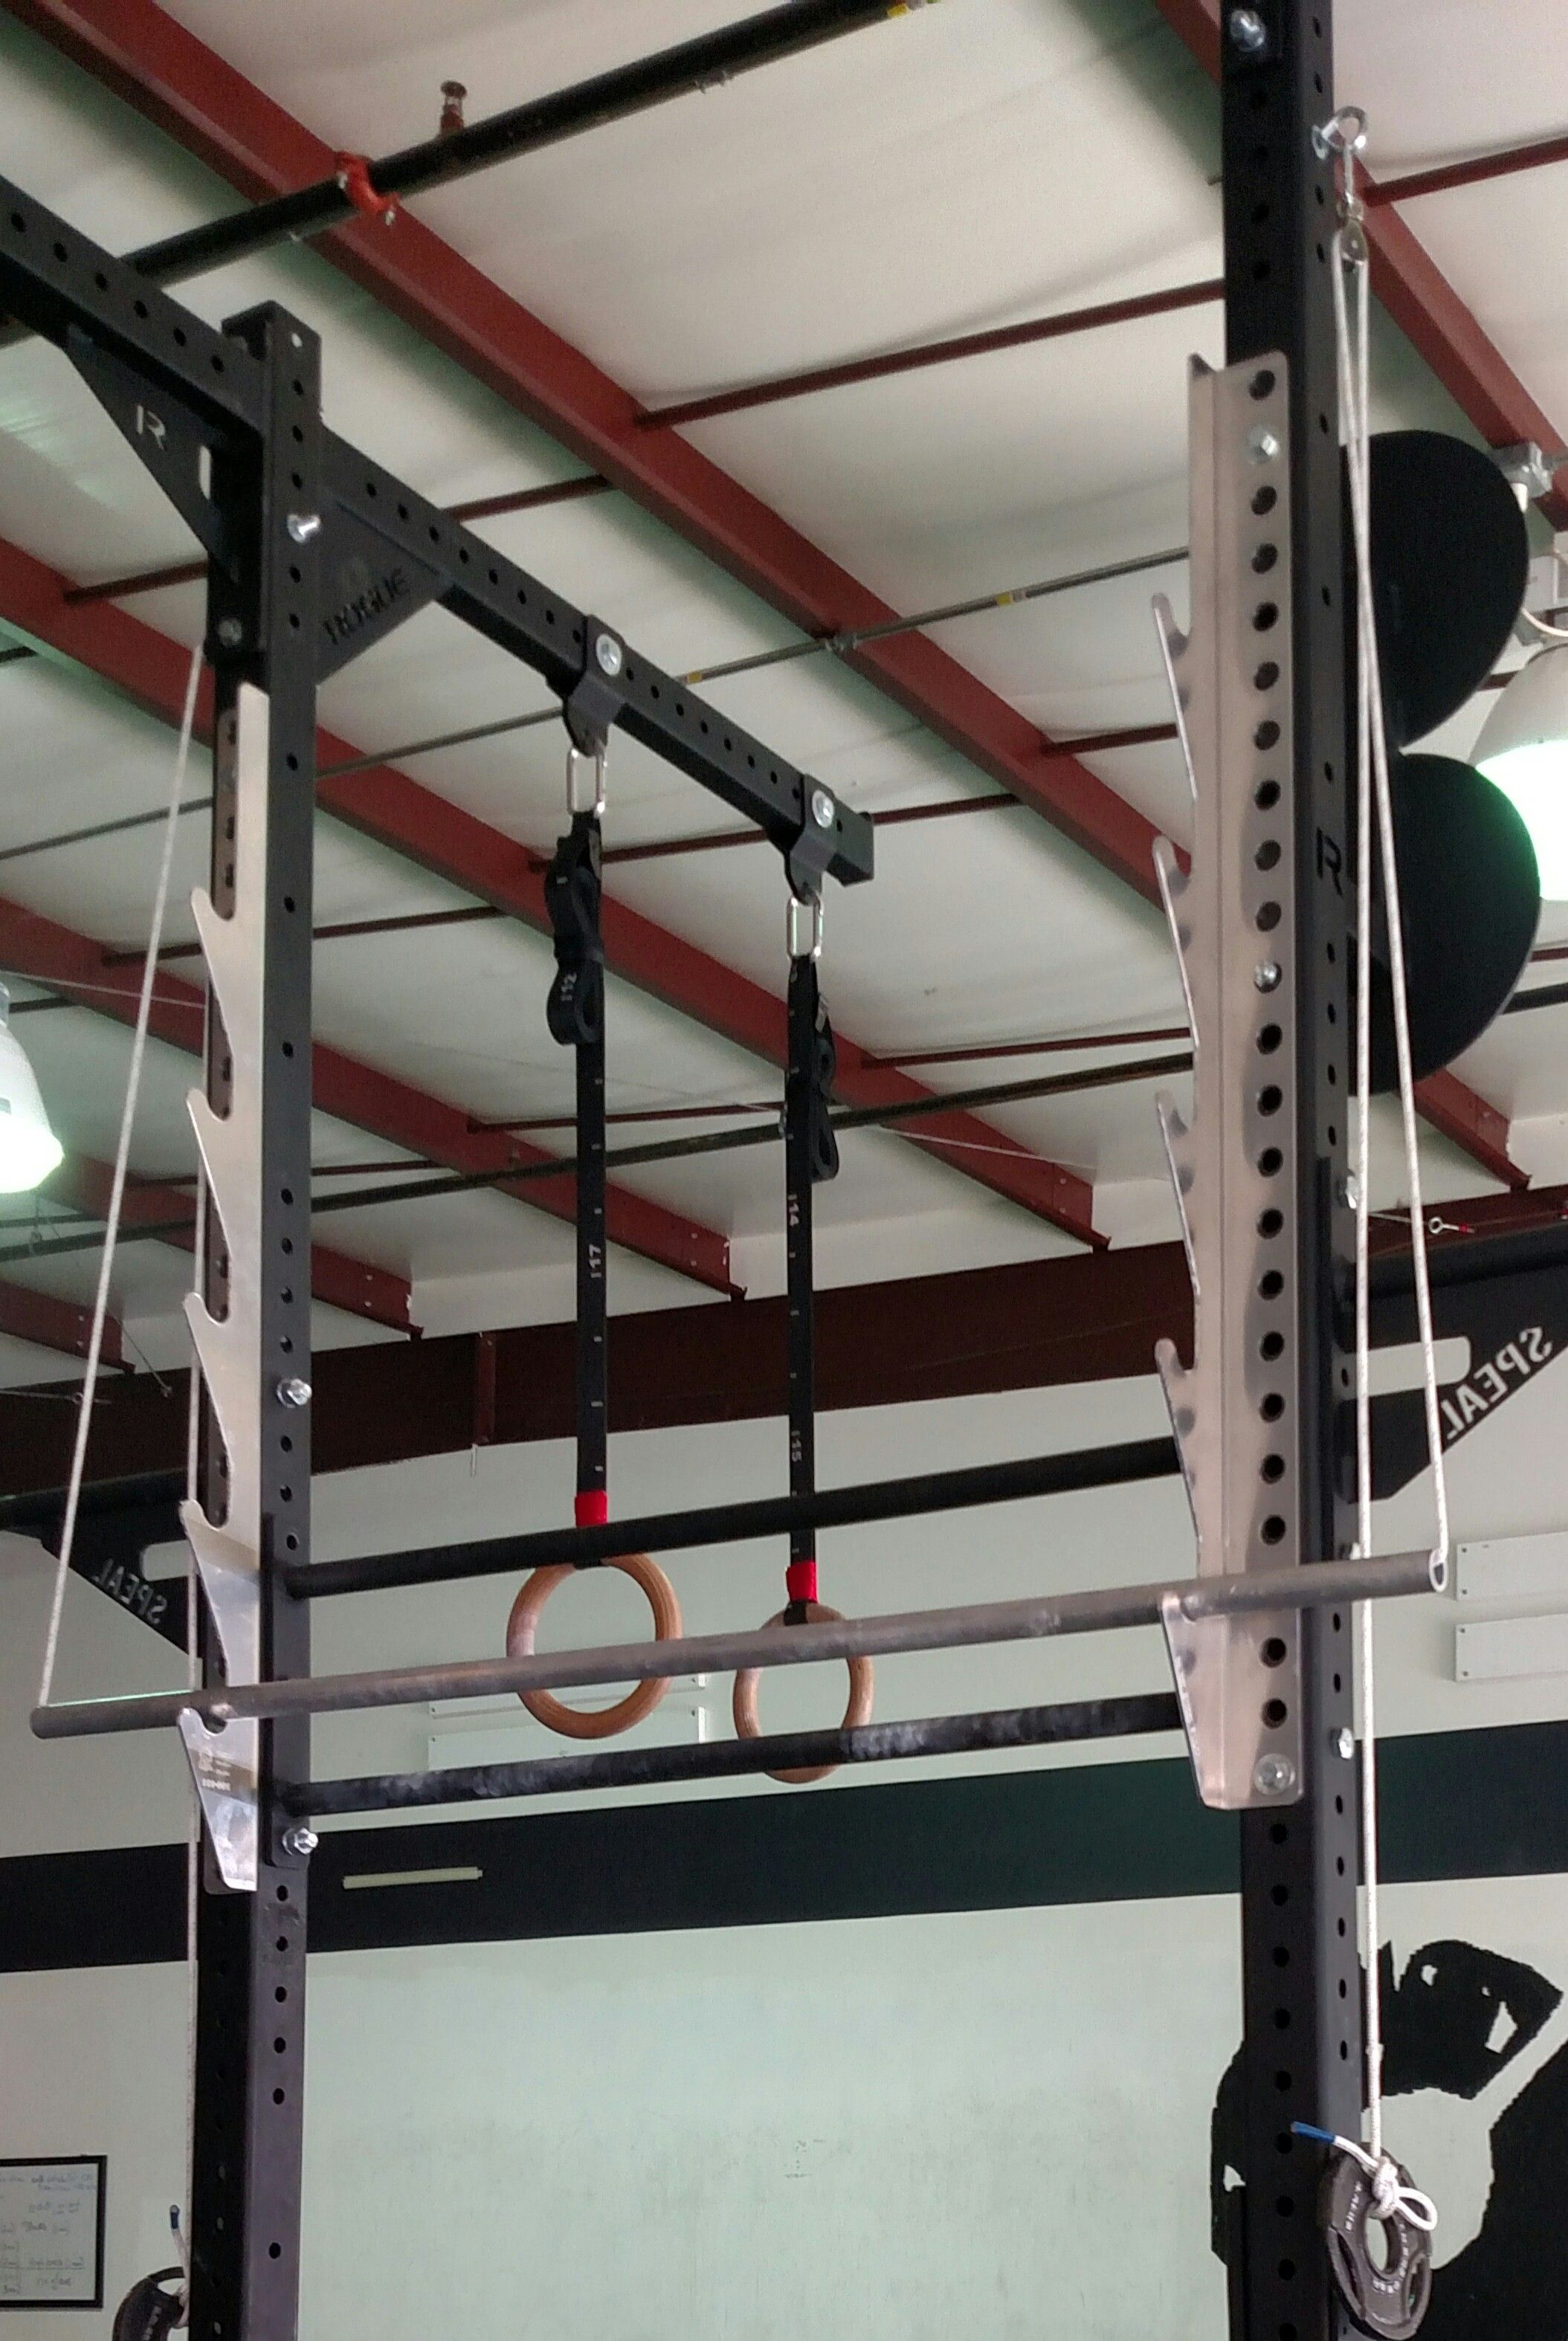 Garage Gym Warrior Salmon Ladder Sms Wall Rig Ninja Sports Products Diy Ladder